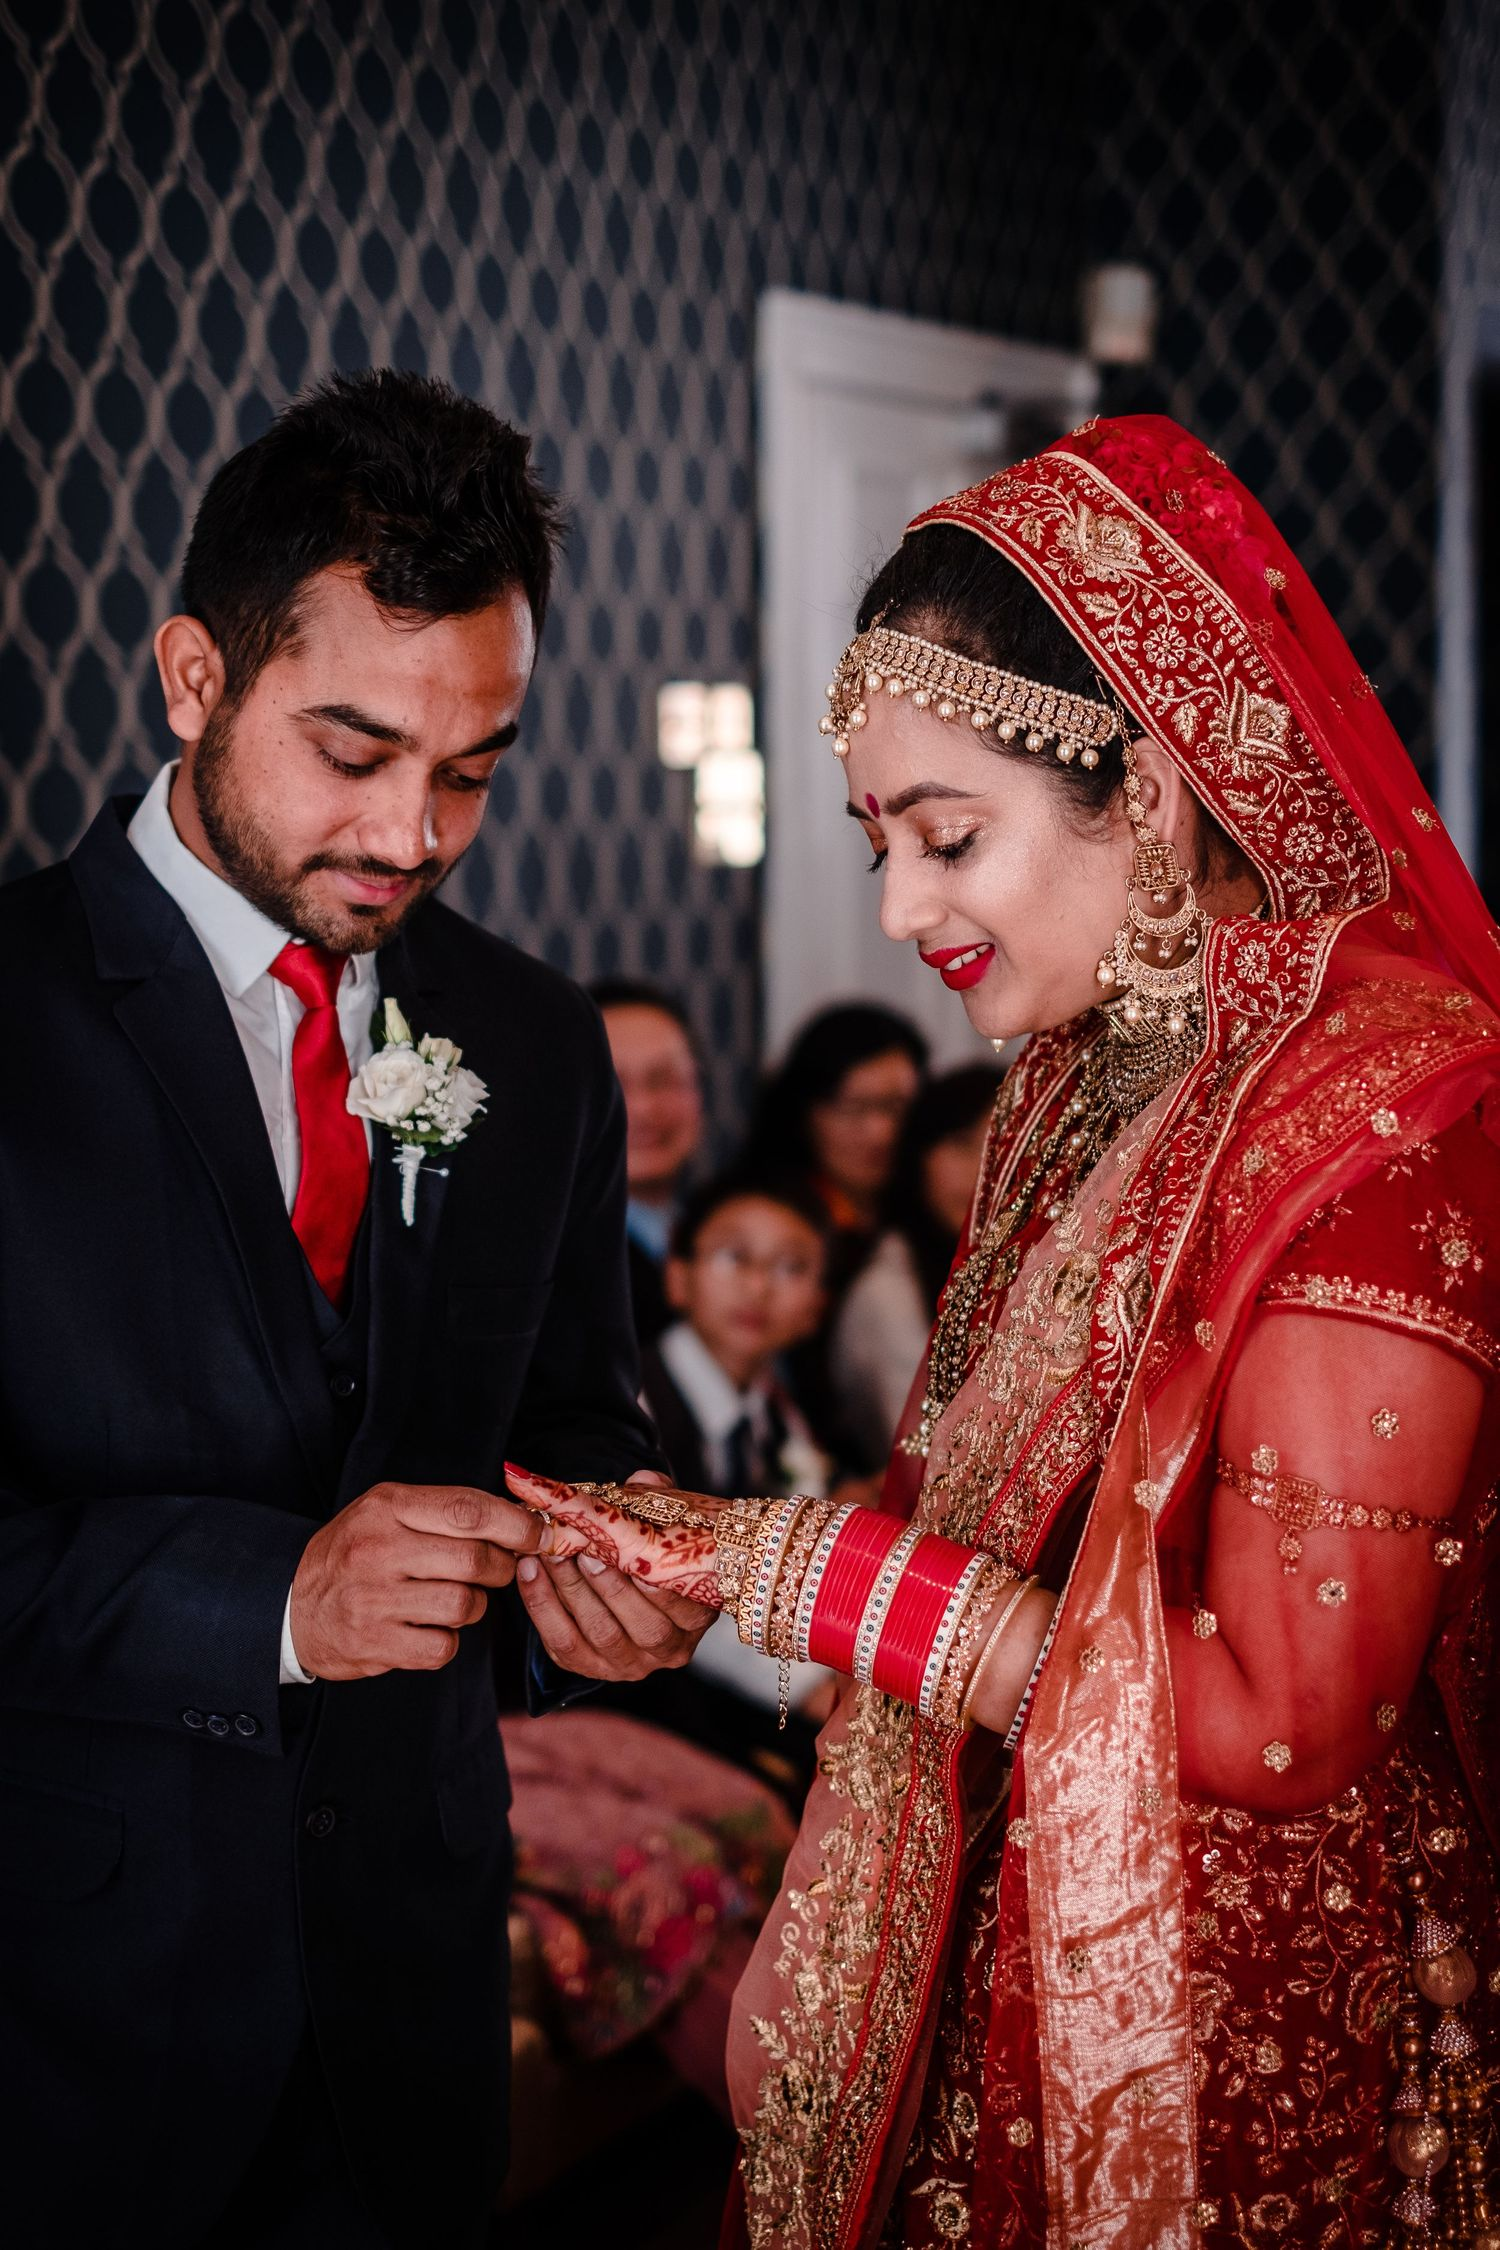 groom puts bride ring on her finger